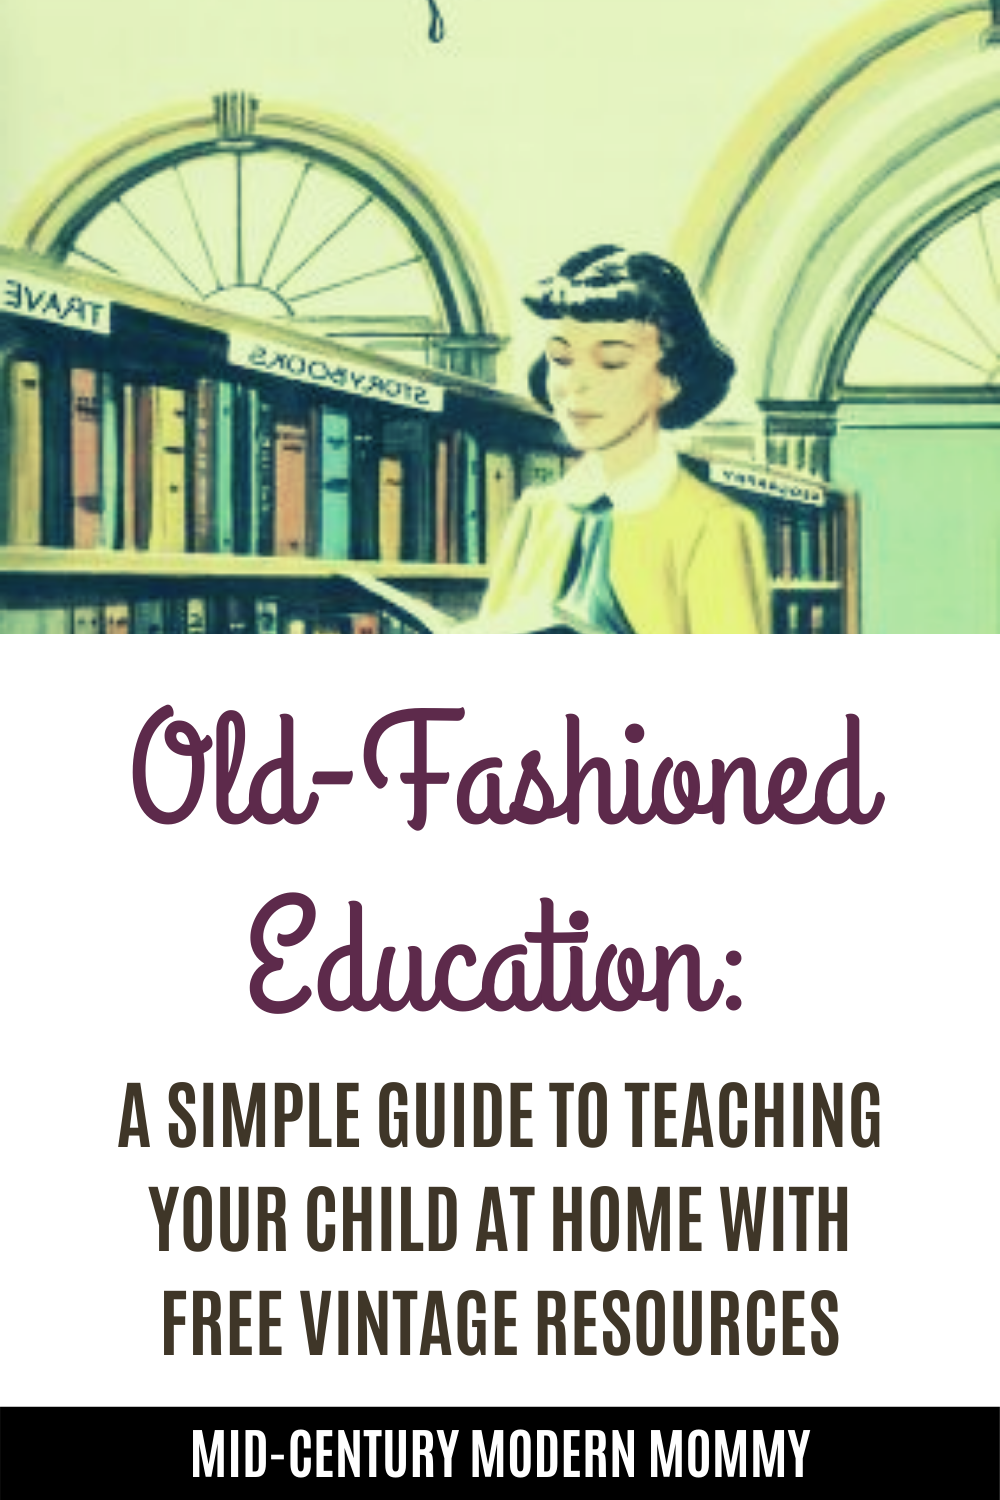 How to Teach Your Child with vintage school library illustration